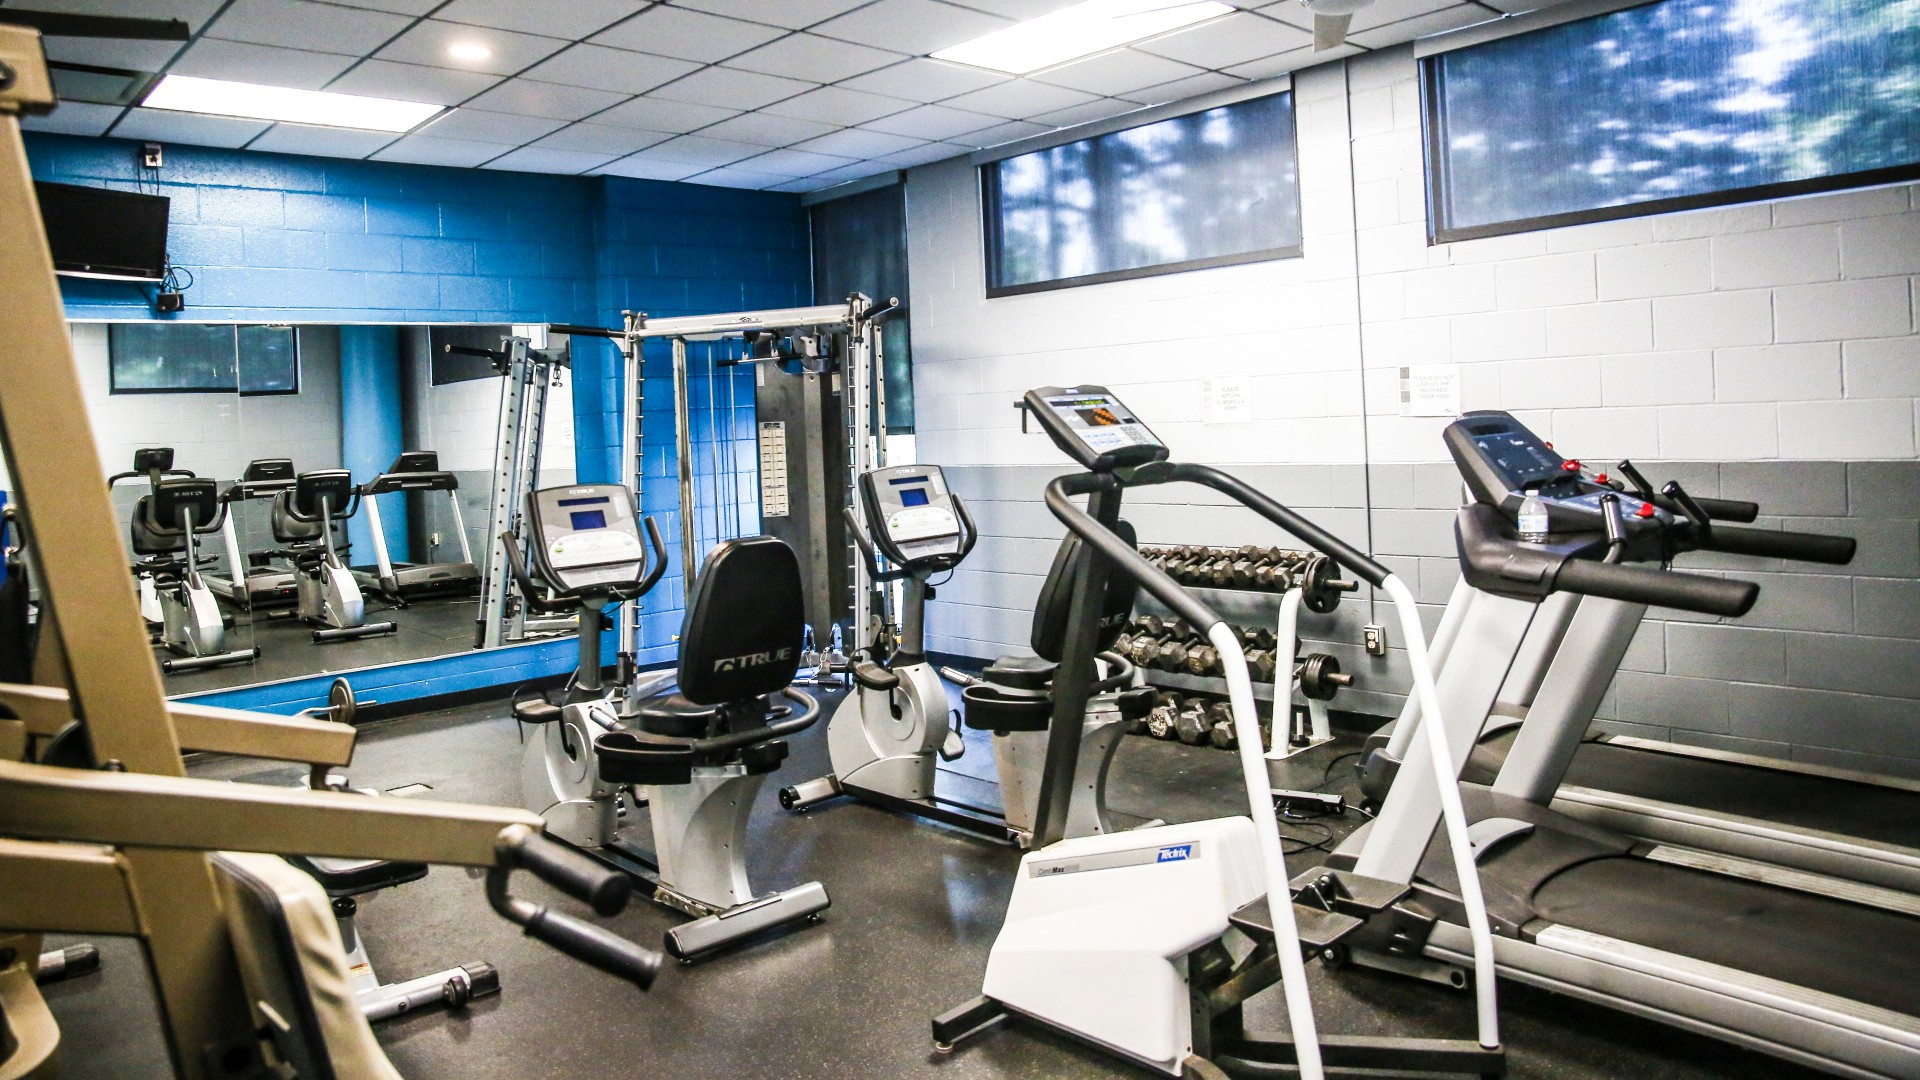 Shot of some of the fitness equipment in the fitness room at Green Road Park